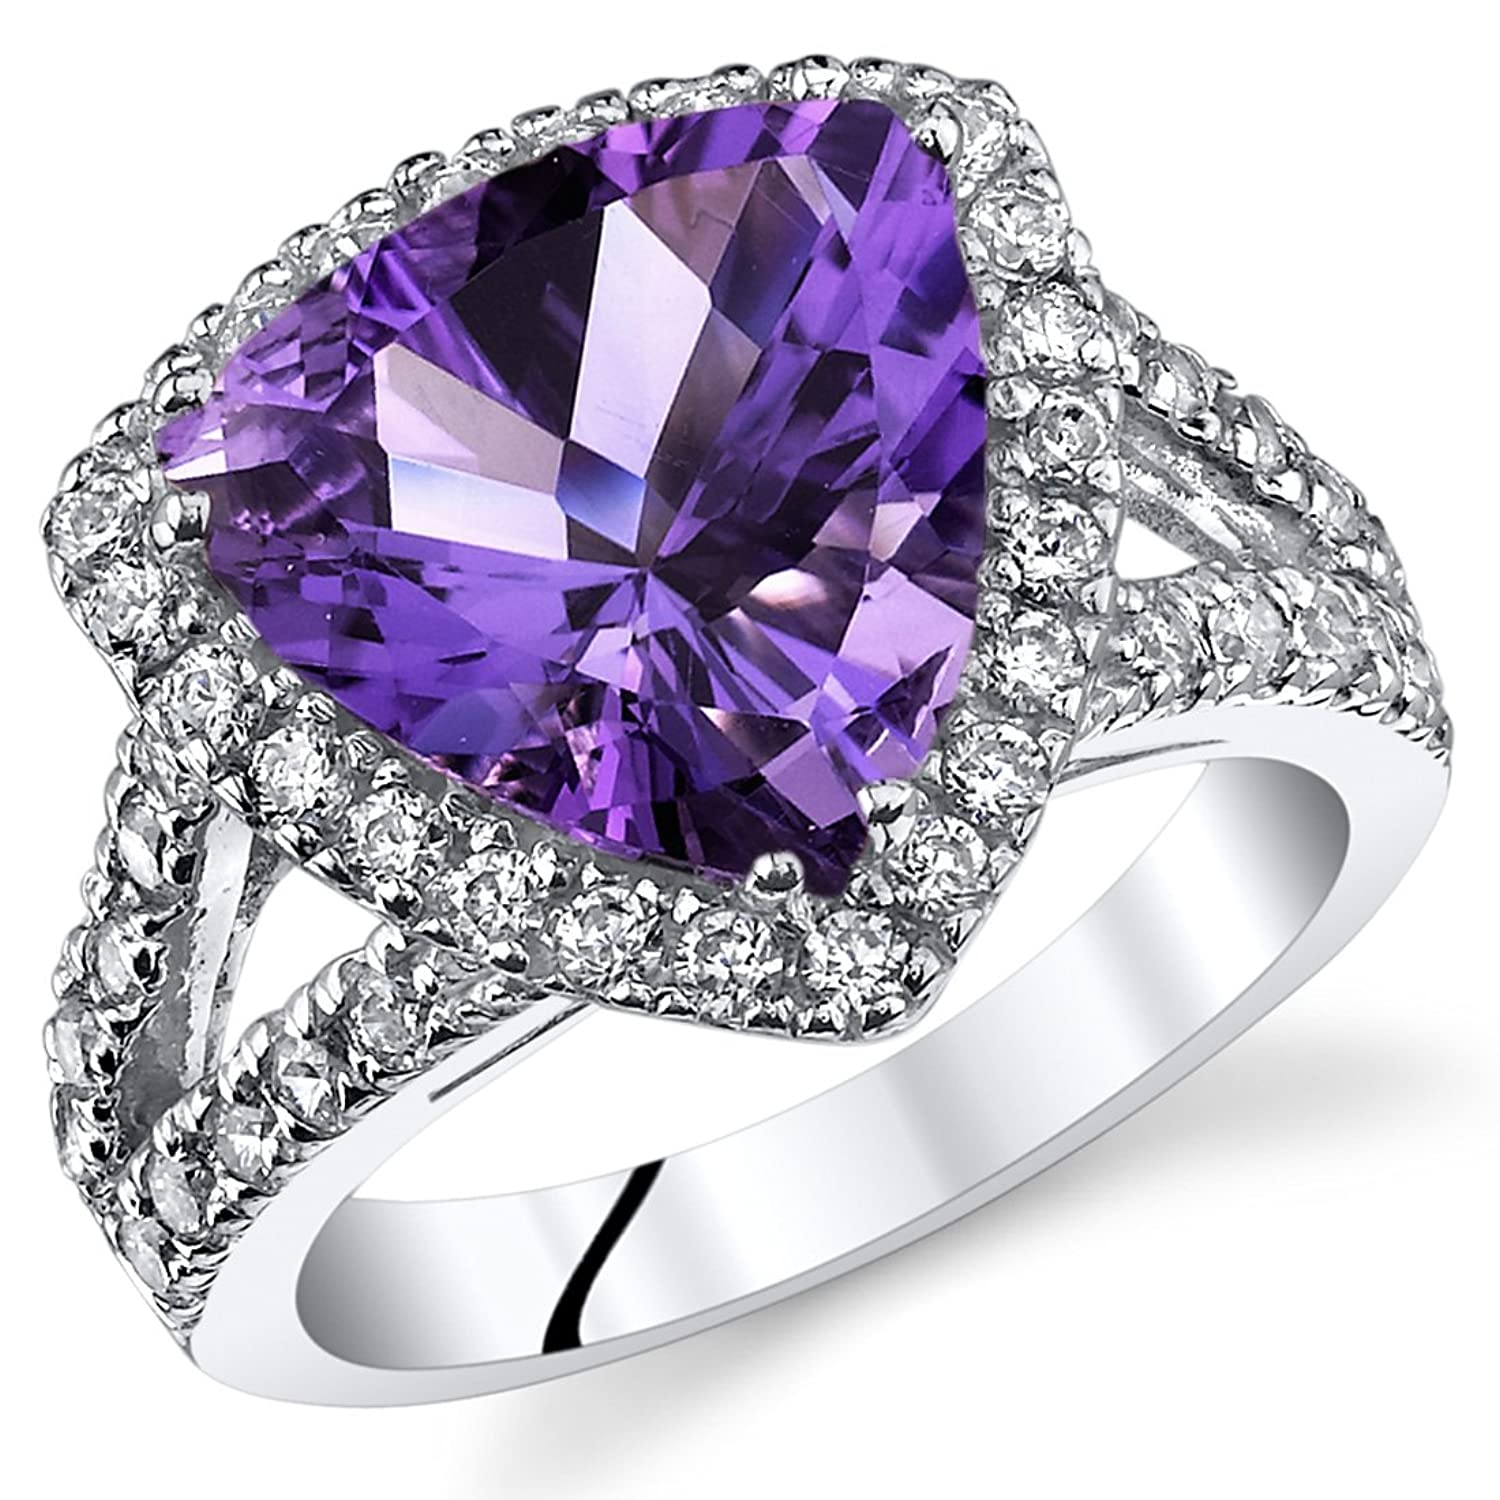 mv to amethyst zm rings shaped heart diamond jar zoom en jaredstore ring hover purple jared silver amp sterling